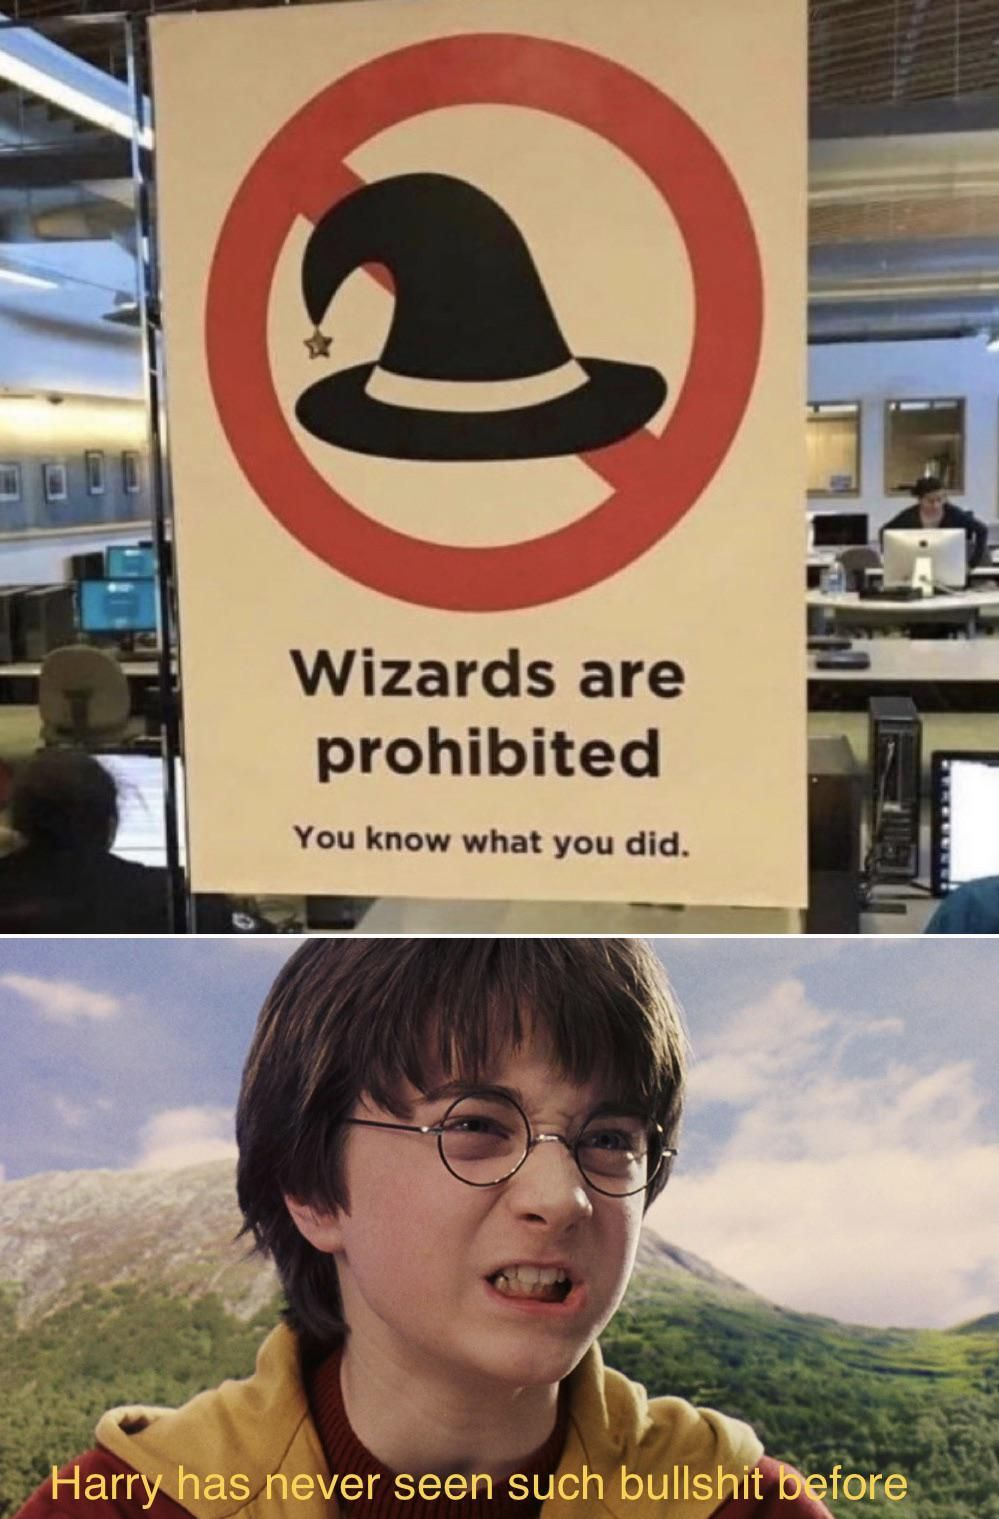 Harry Potter And The Audacity Of This Btch Funny Memes Harry Potter Memes